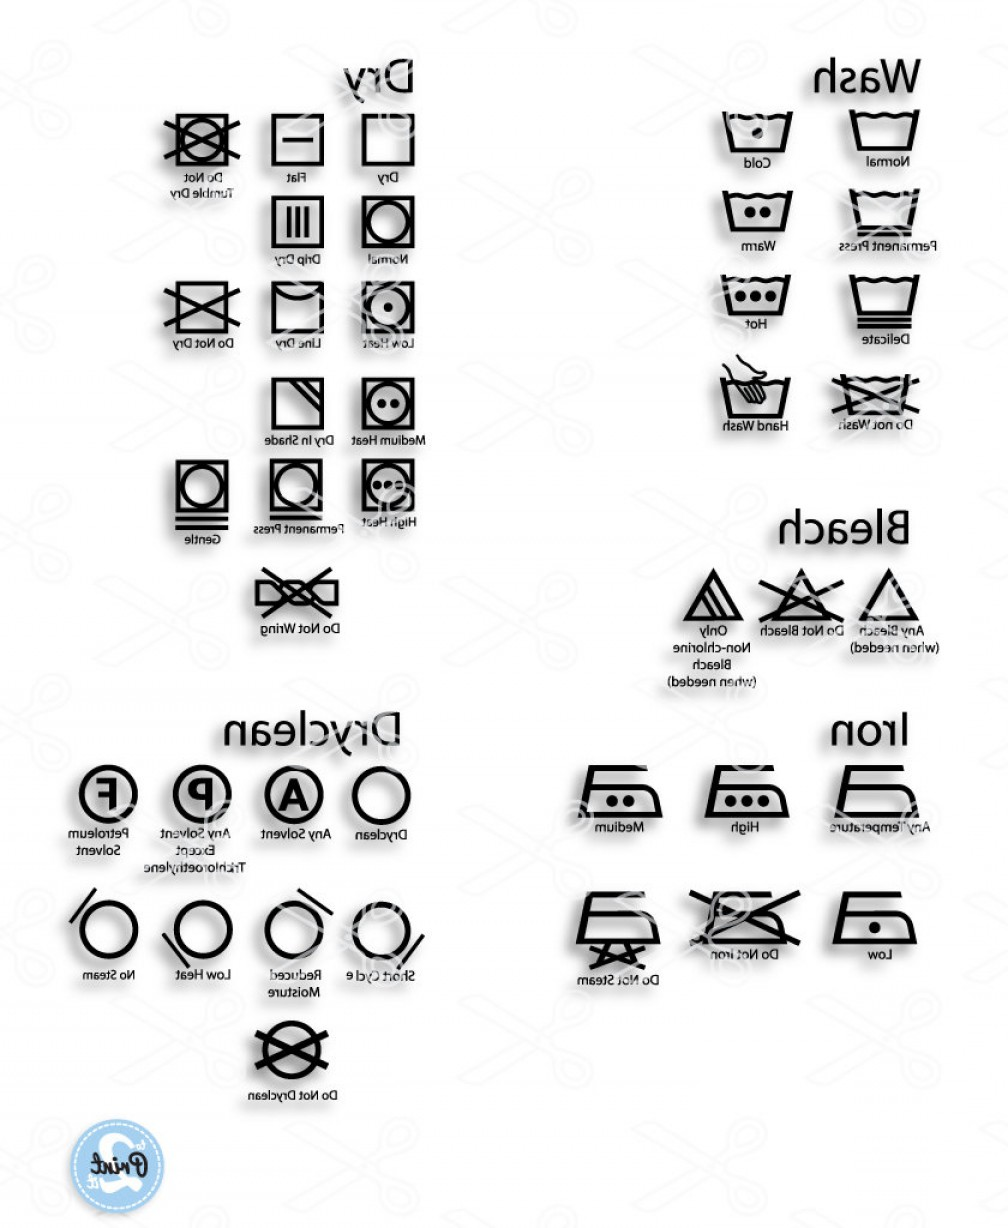 Washer Machine Vector Decal: Laundry Svg Png Dxf Eps Cutting Files